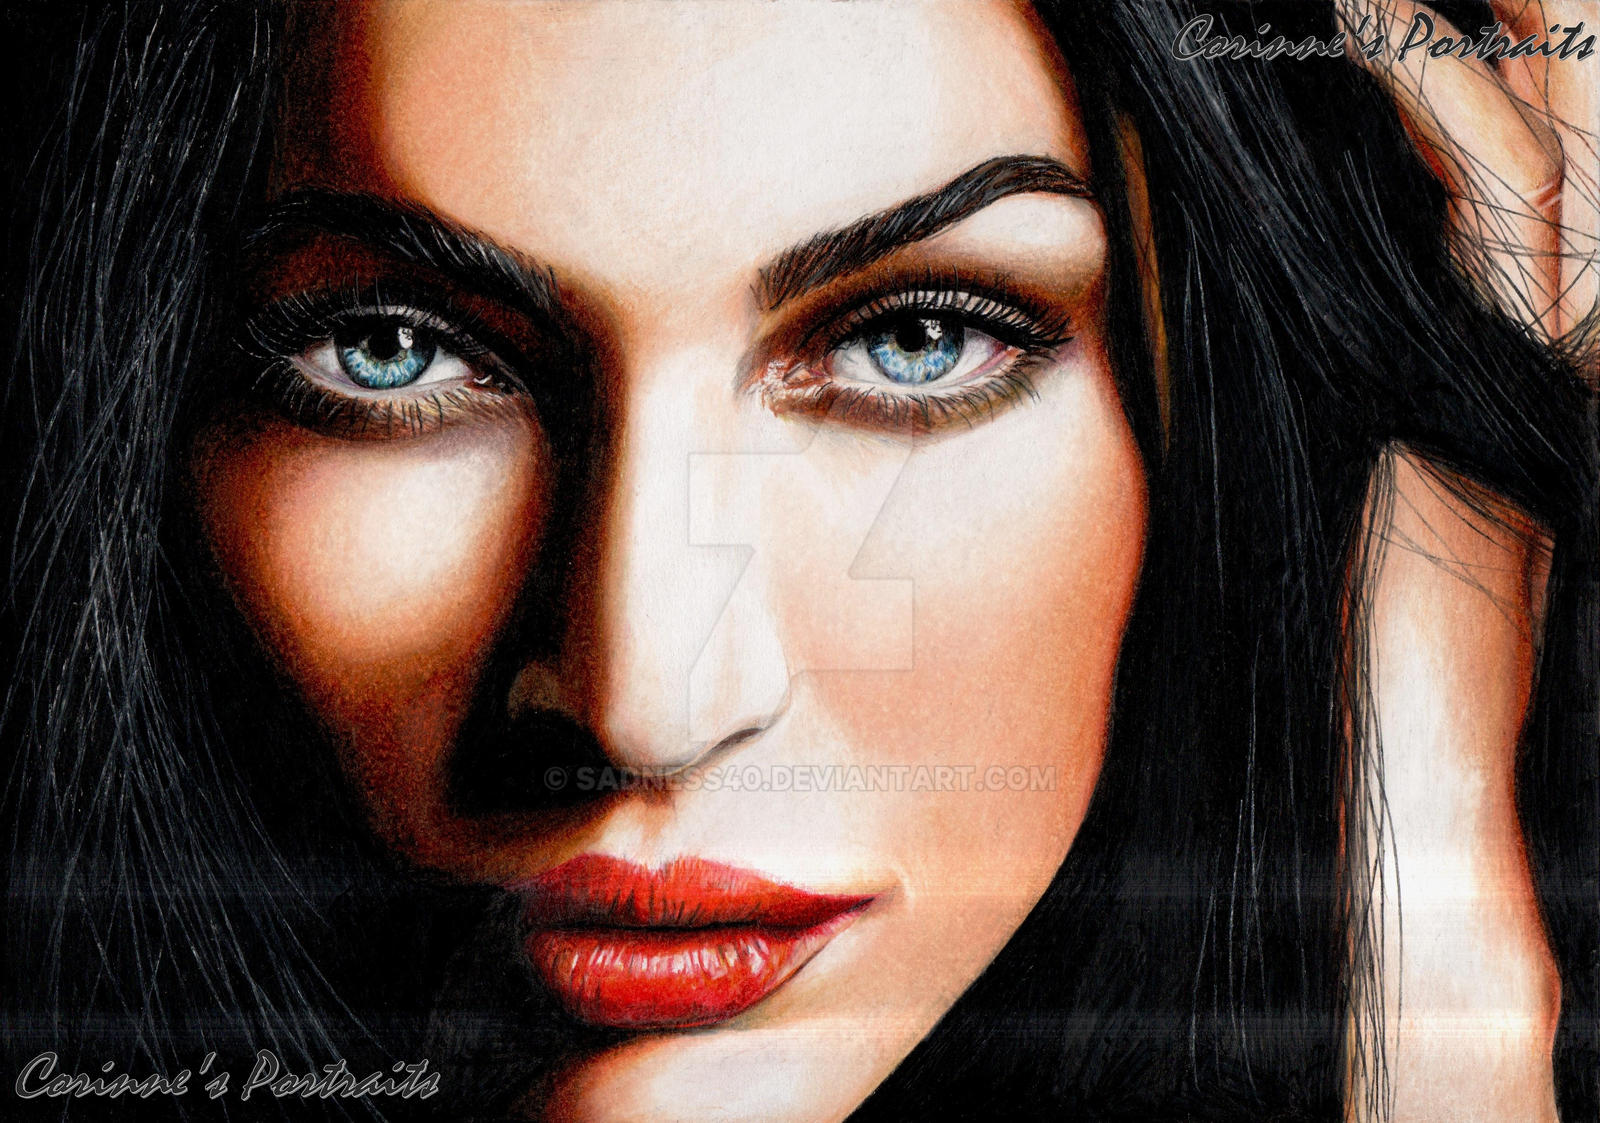 Megan FOX by Sadness40